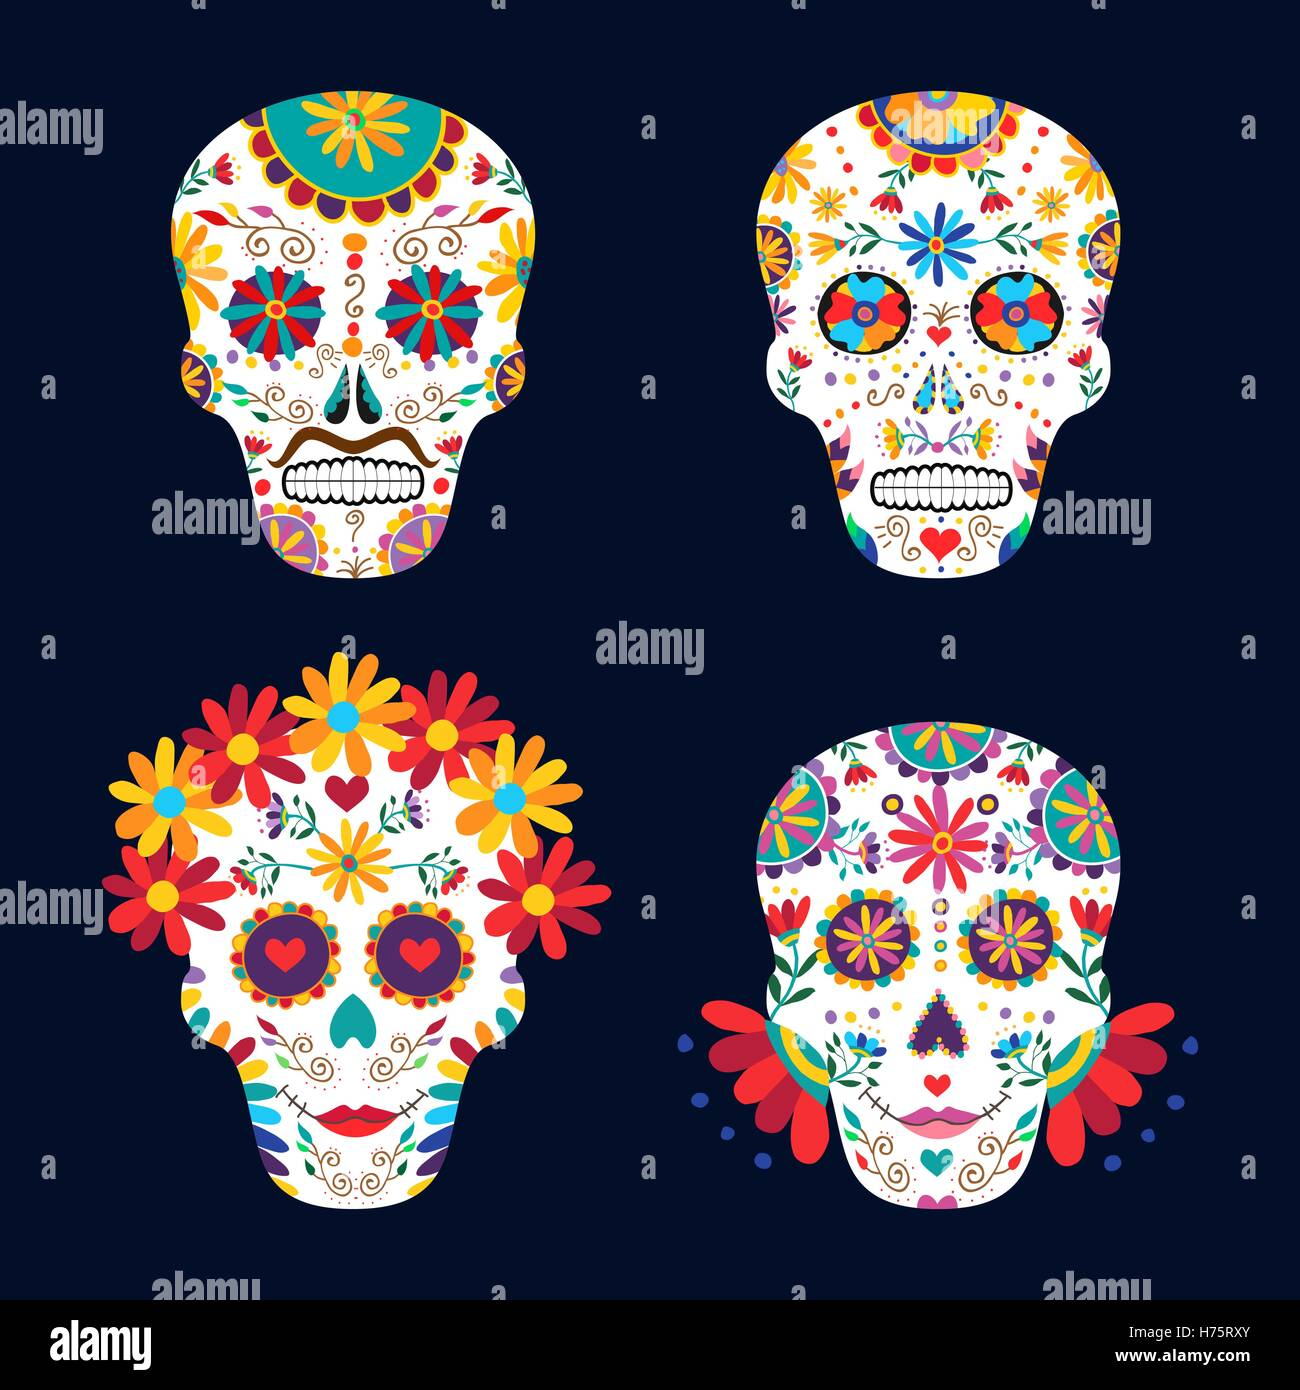 Skull Set For Day Of The Dead Celebration Traditional Mexican Decoration With Flowers And Colorful Art EPS10 Vector